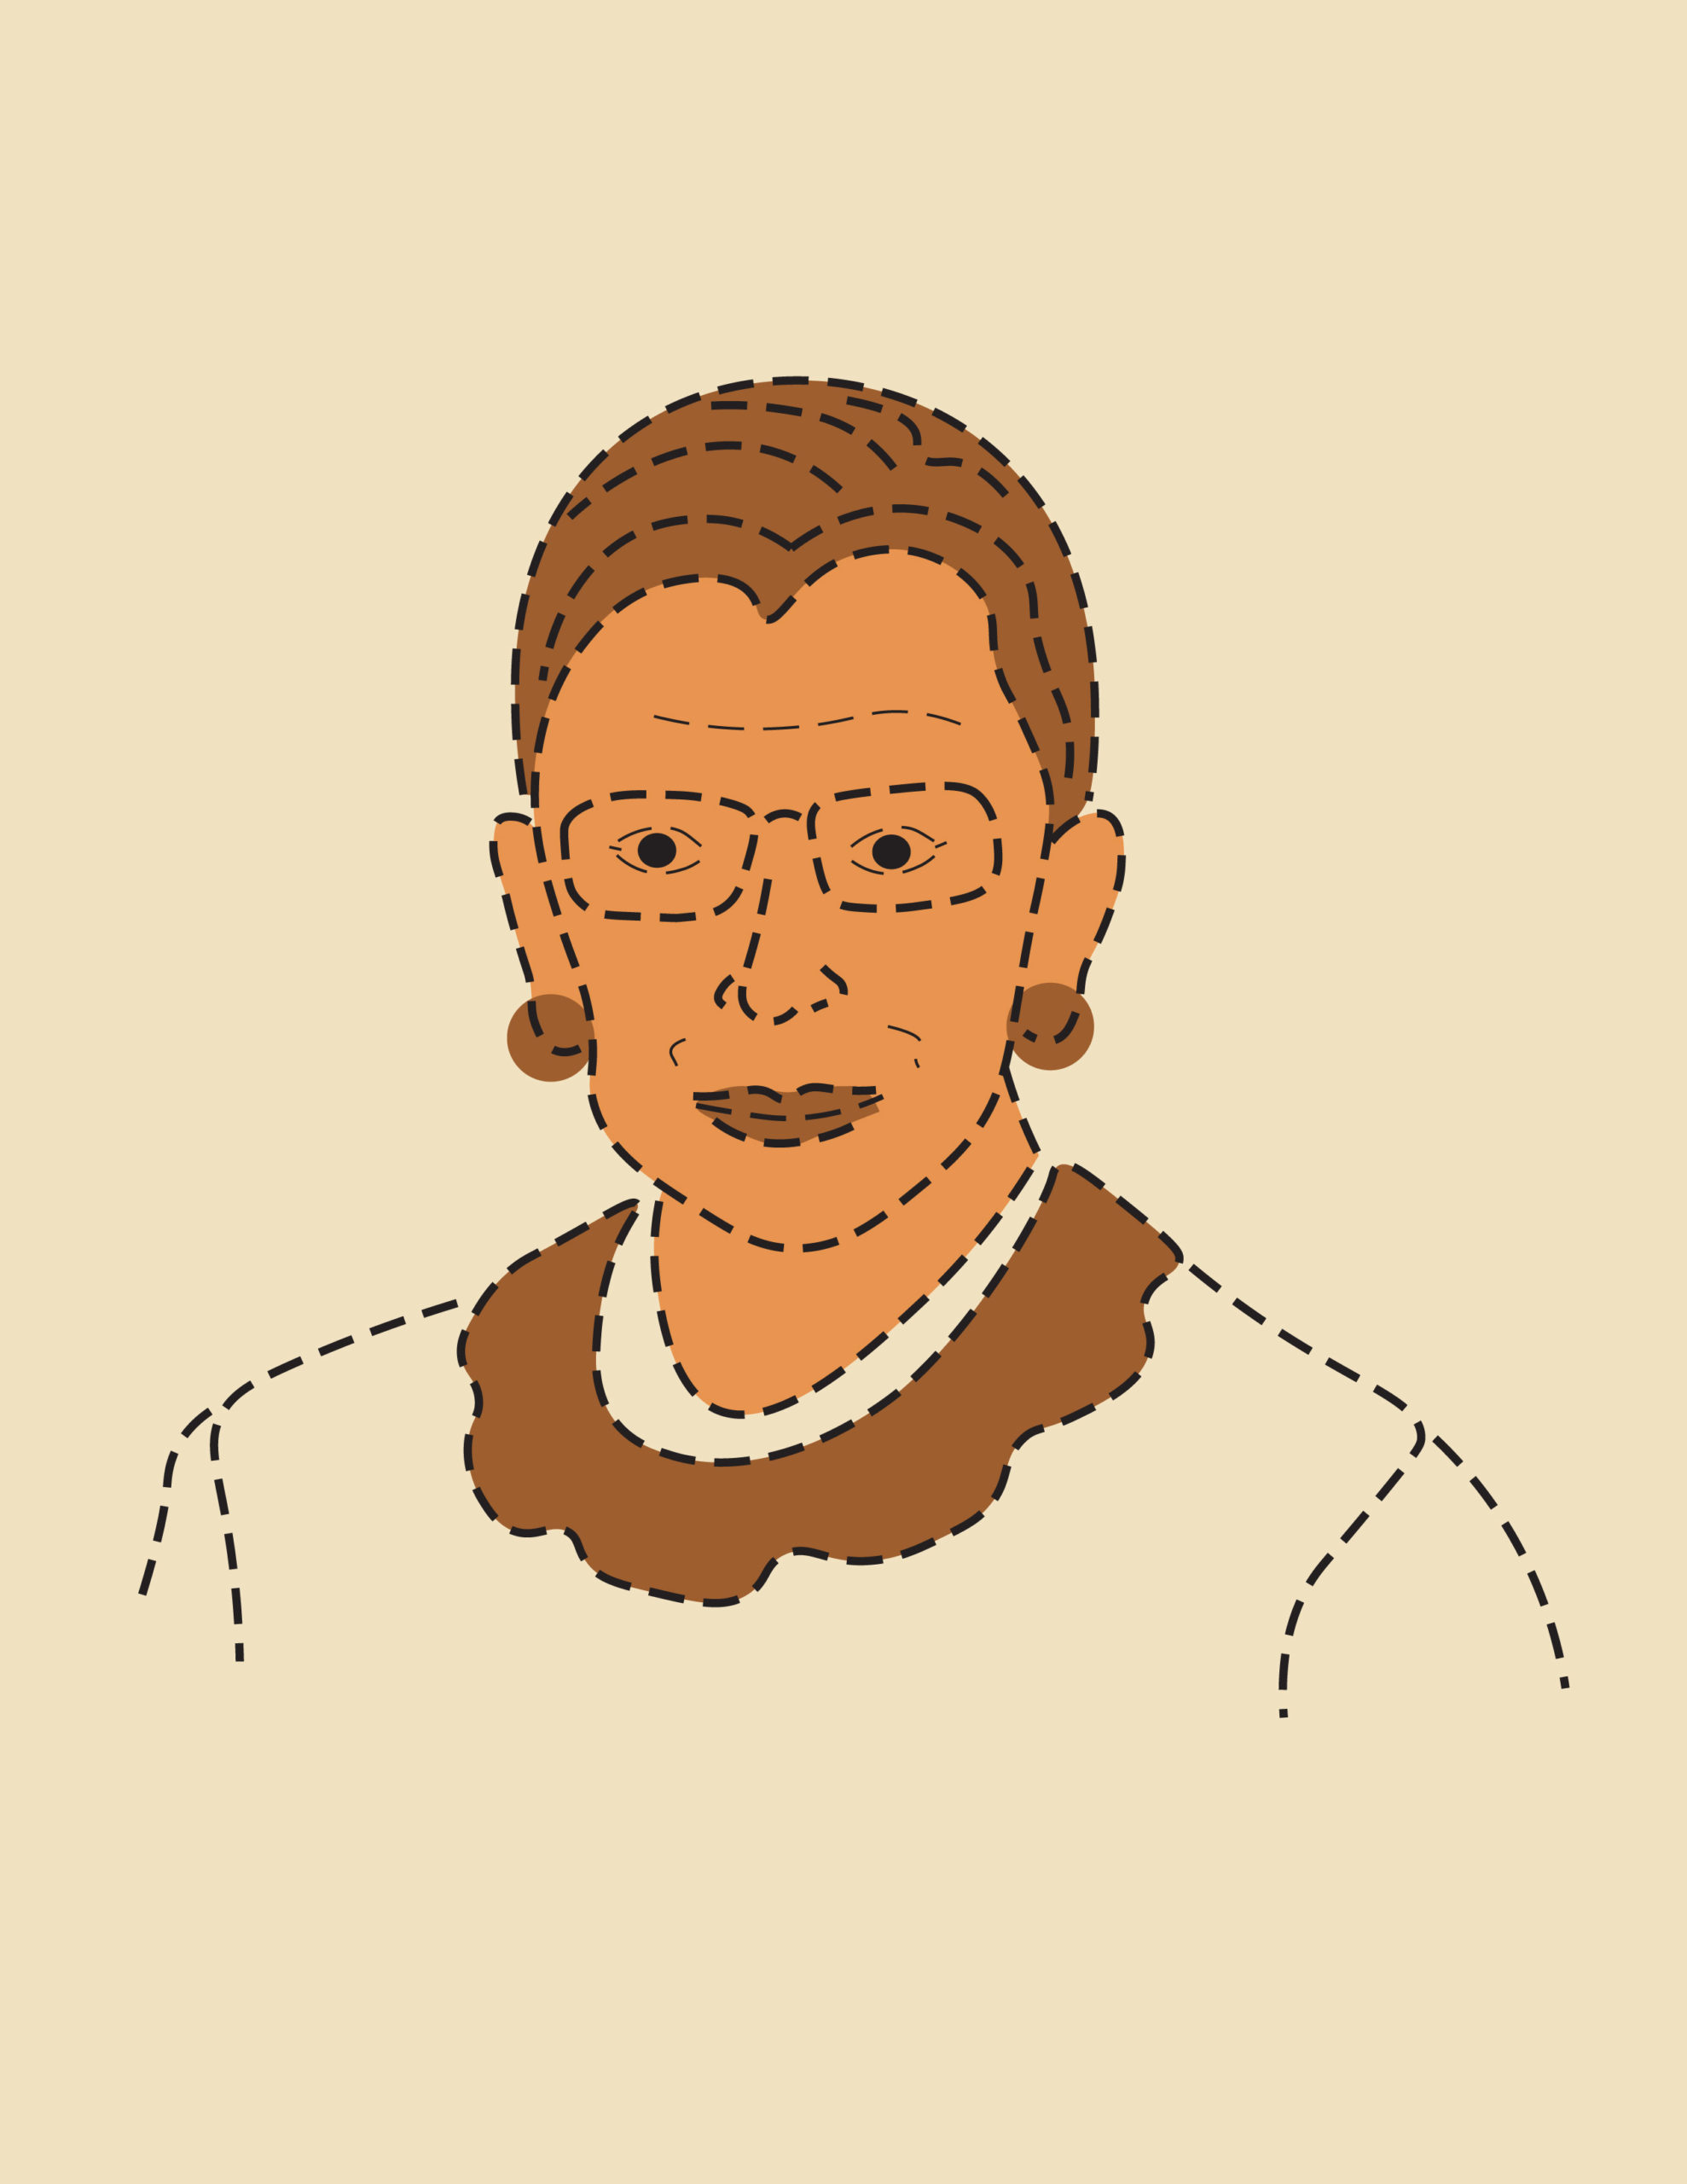 Graphic detailing a portrait of the late Ruth Bader Ginsburg.